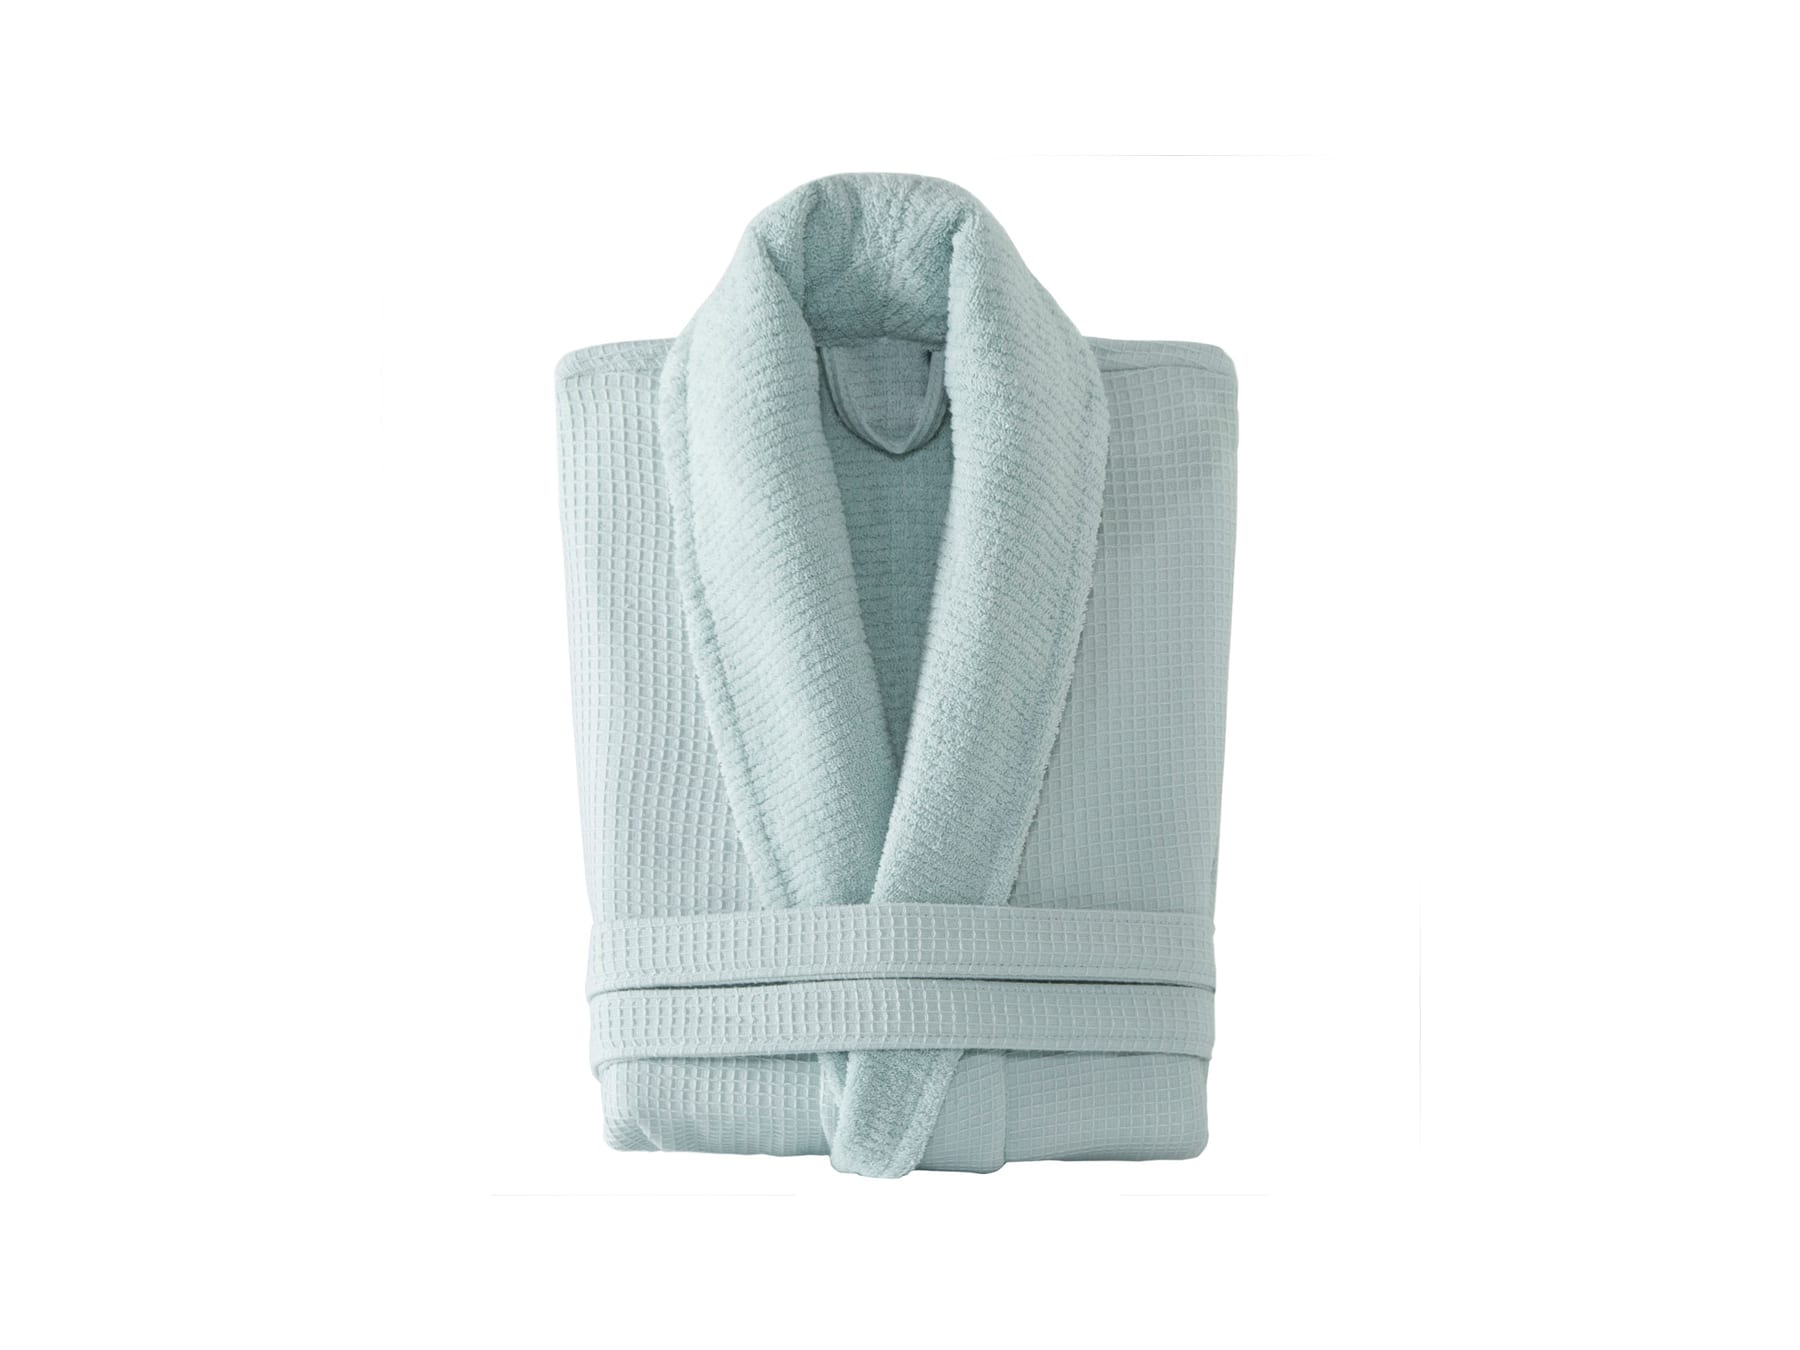 Linens & More Turkish Cotton Bathrobe in Mint available at McKenzie & Willis